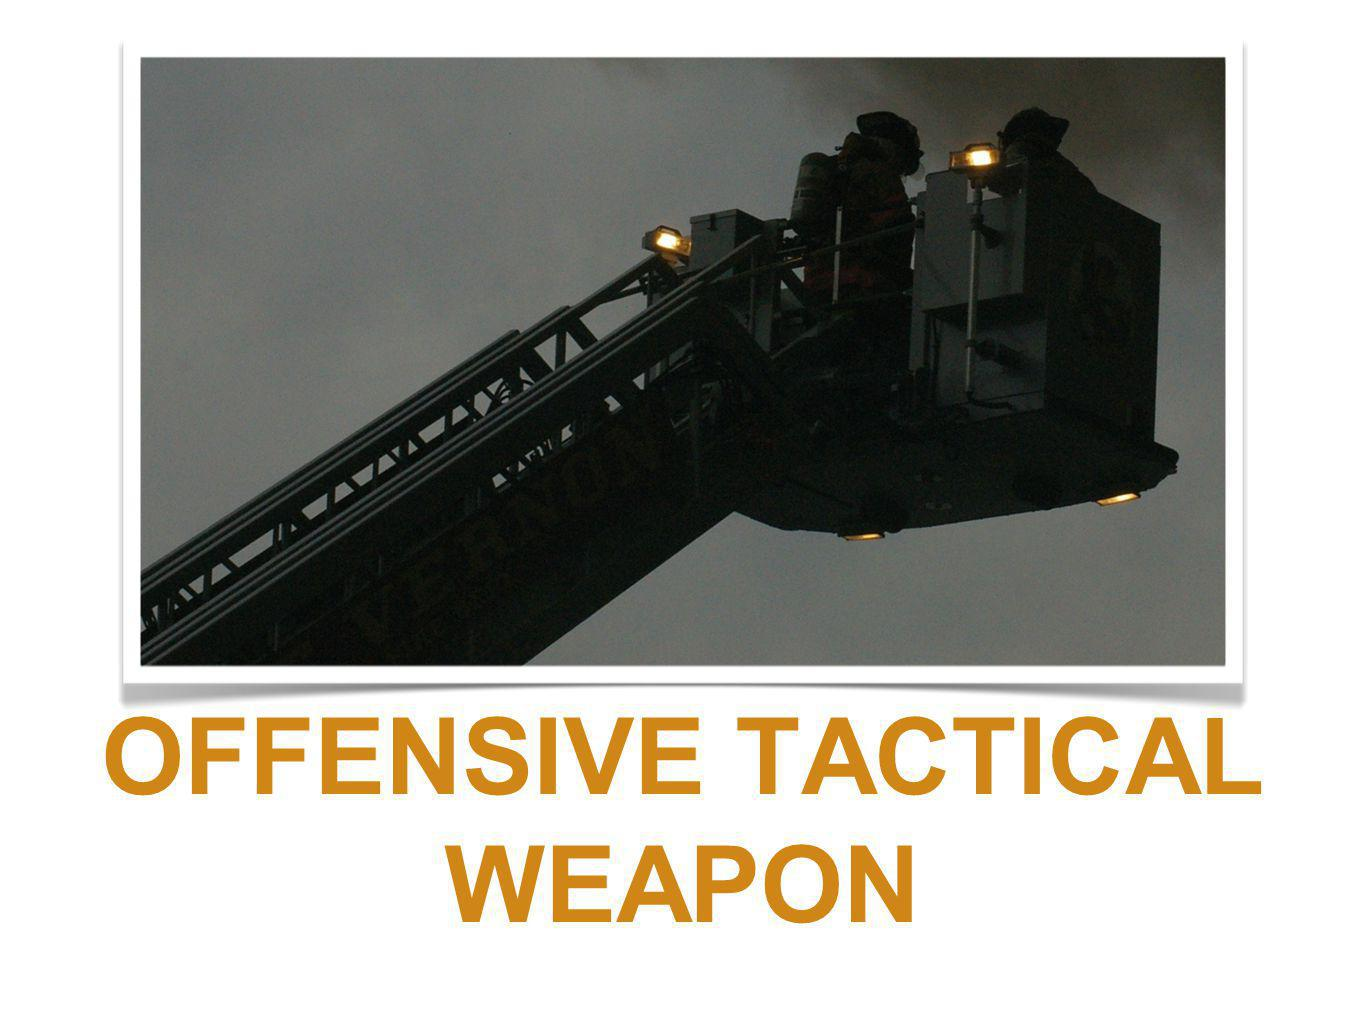 OFFENSIVE TACTICAL WEAPON